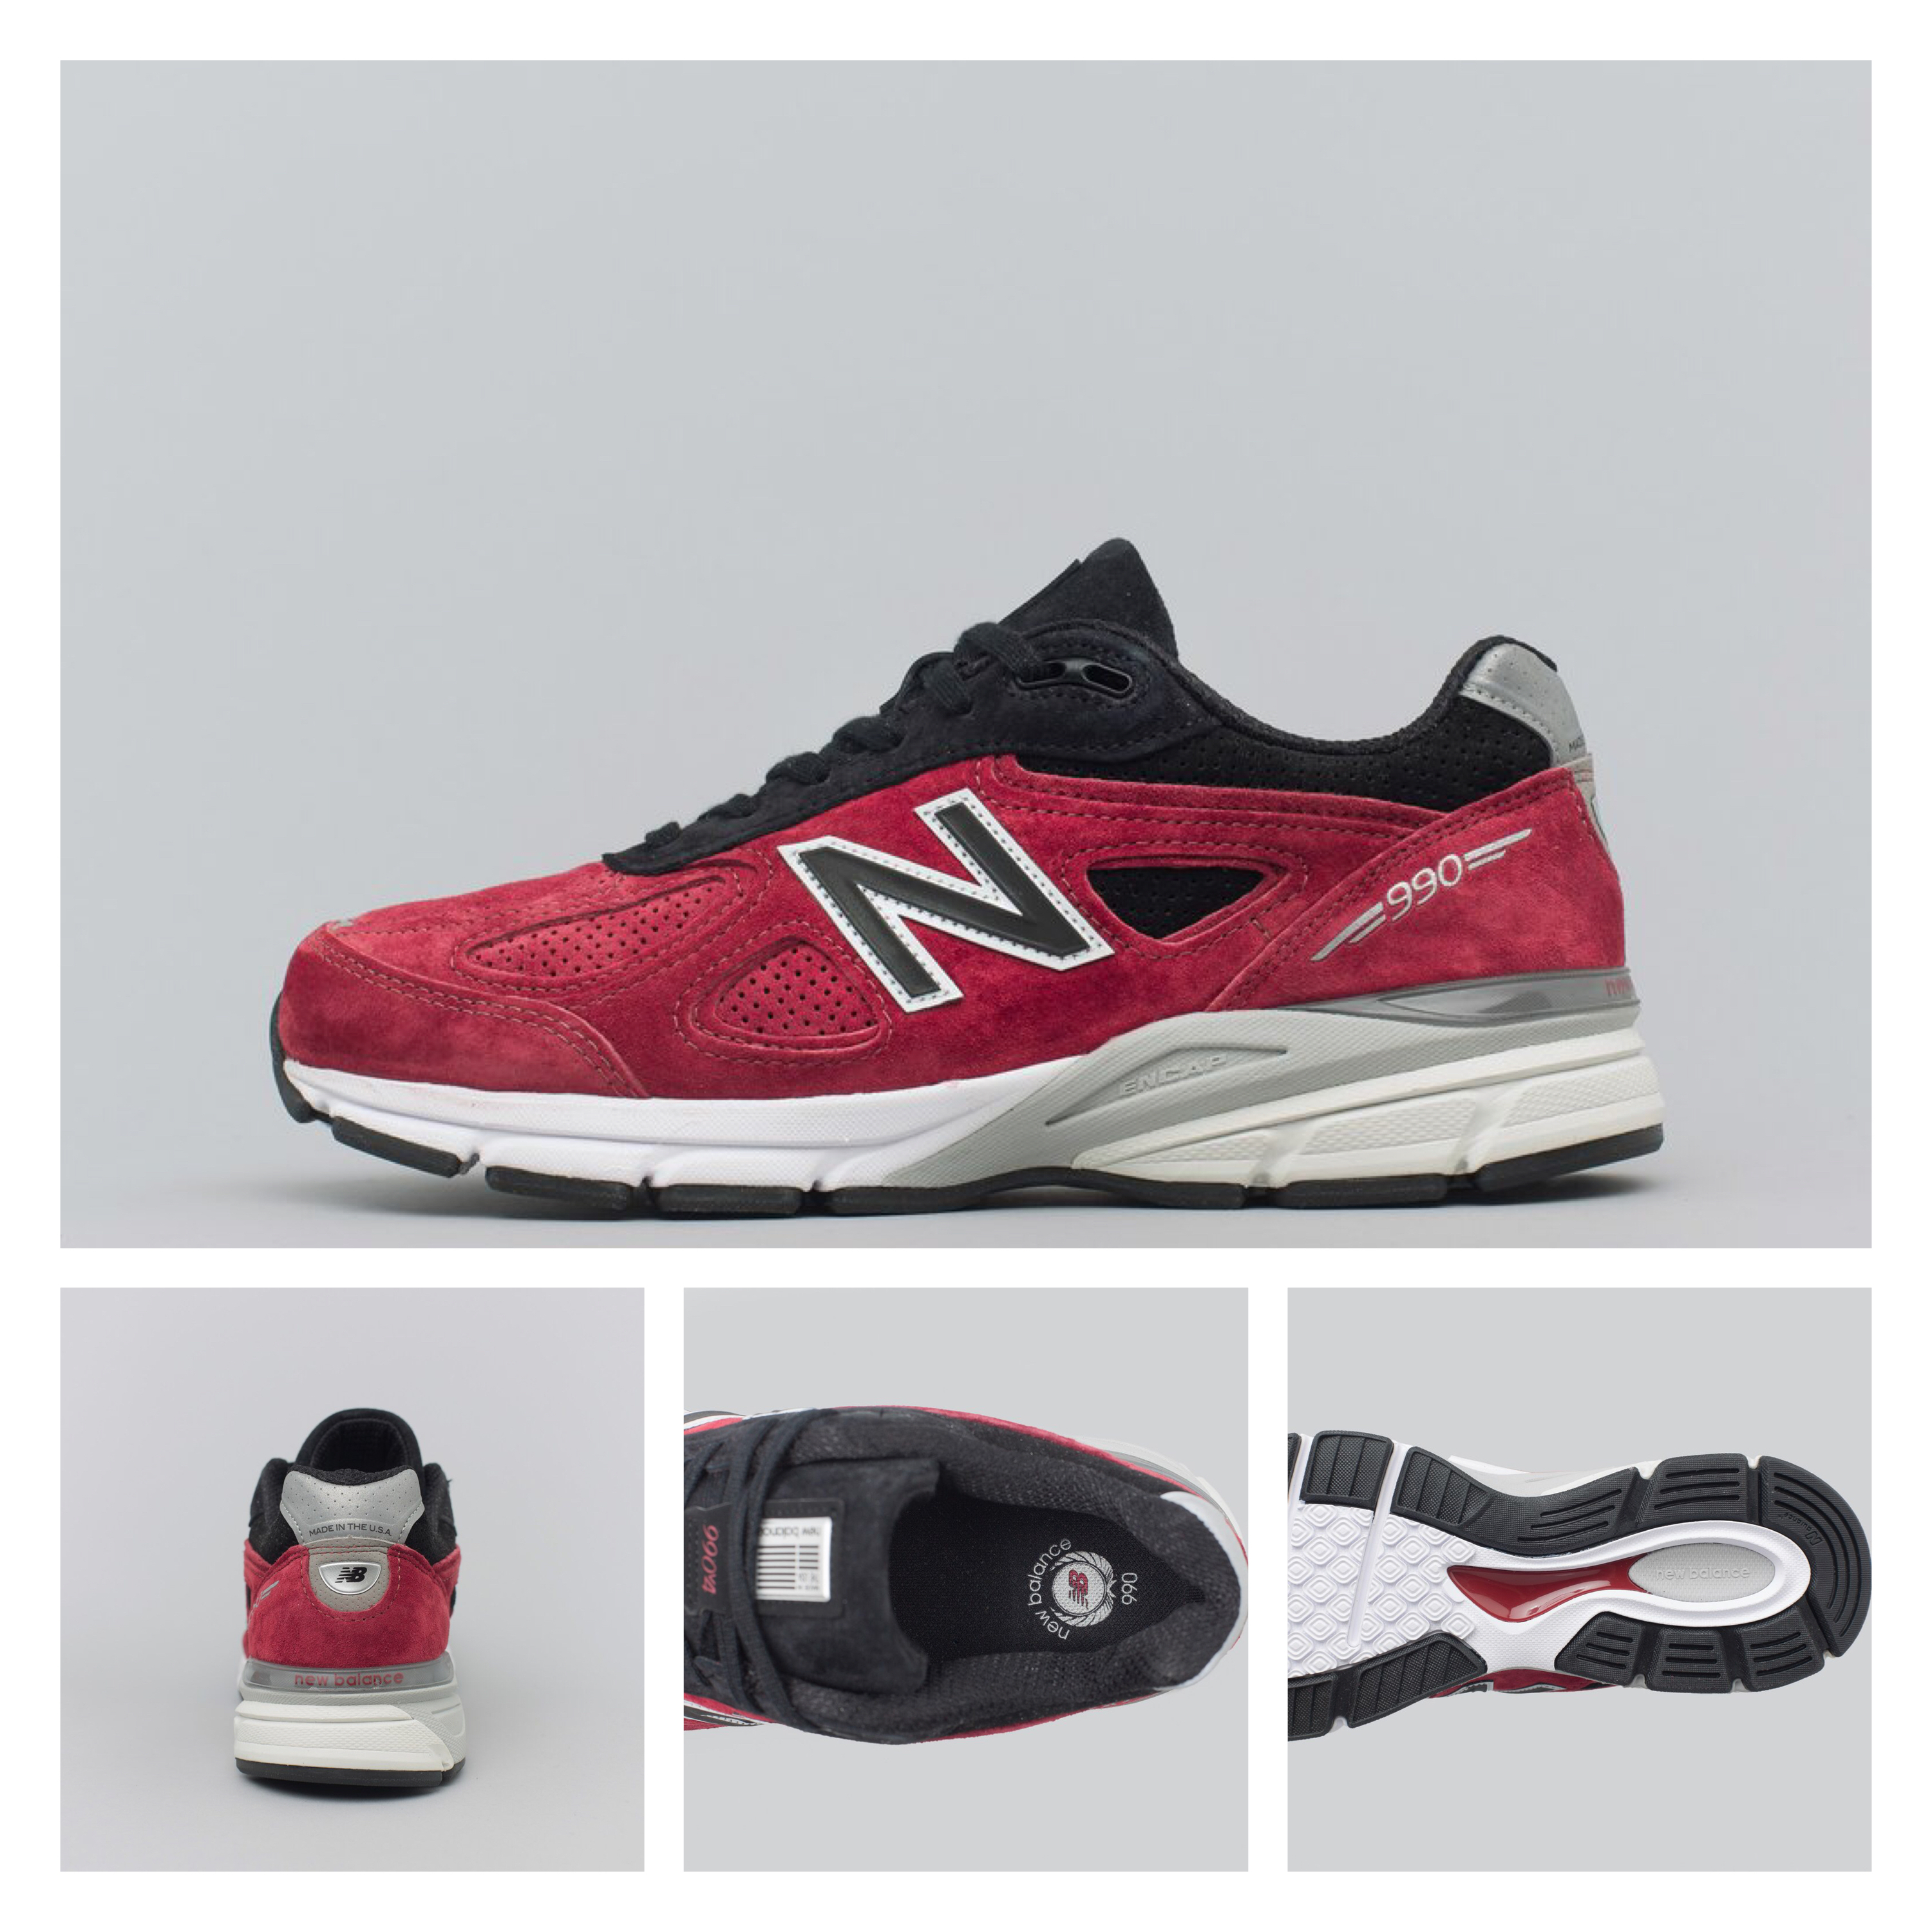 online retailer a9c91 788b8 New Balance 990 2018-19AW Sneakers